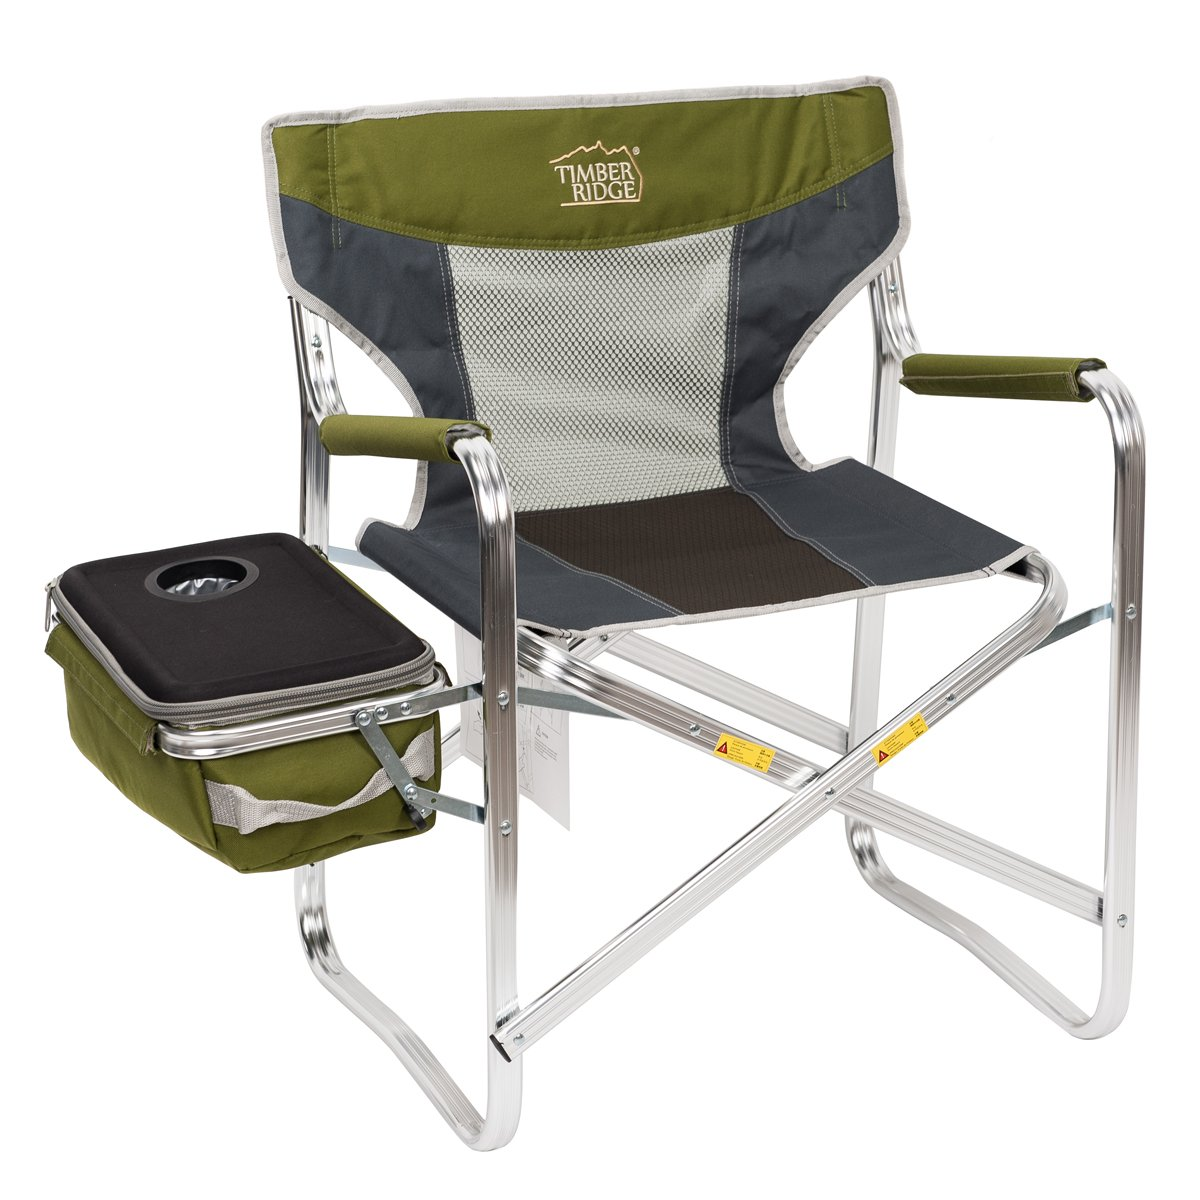 Timber Ridge Director's Chair Additional Cooler Bag Detachable Breathable Back Folding Lightweight for Camping Portable Supports 300lbs by Timber Ridge